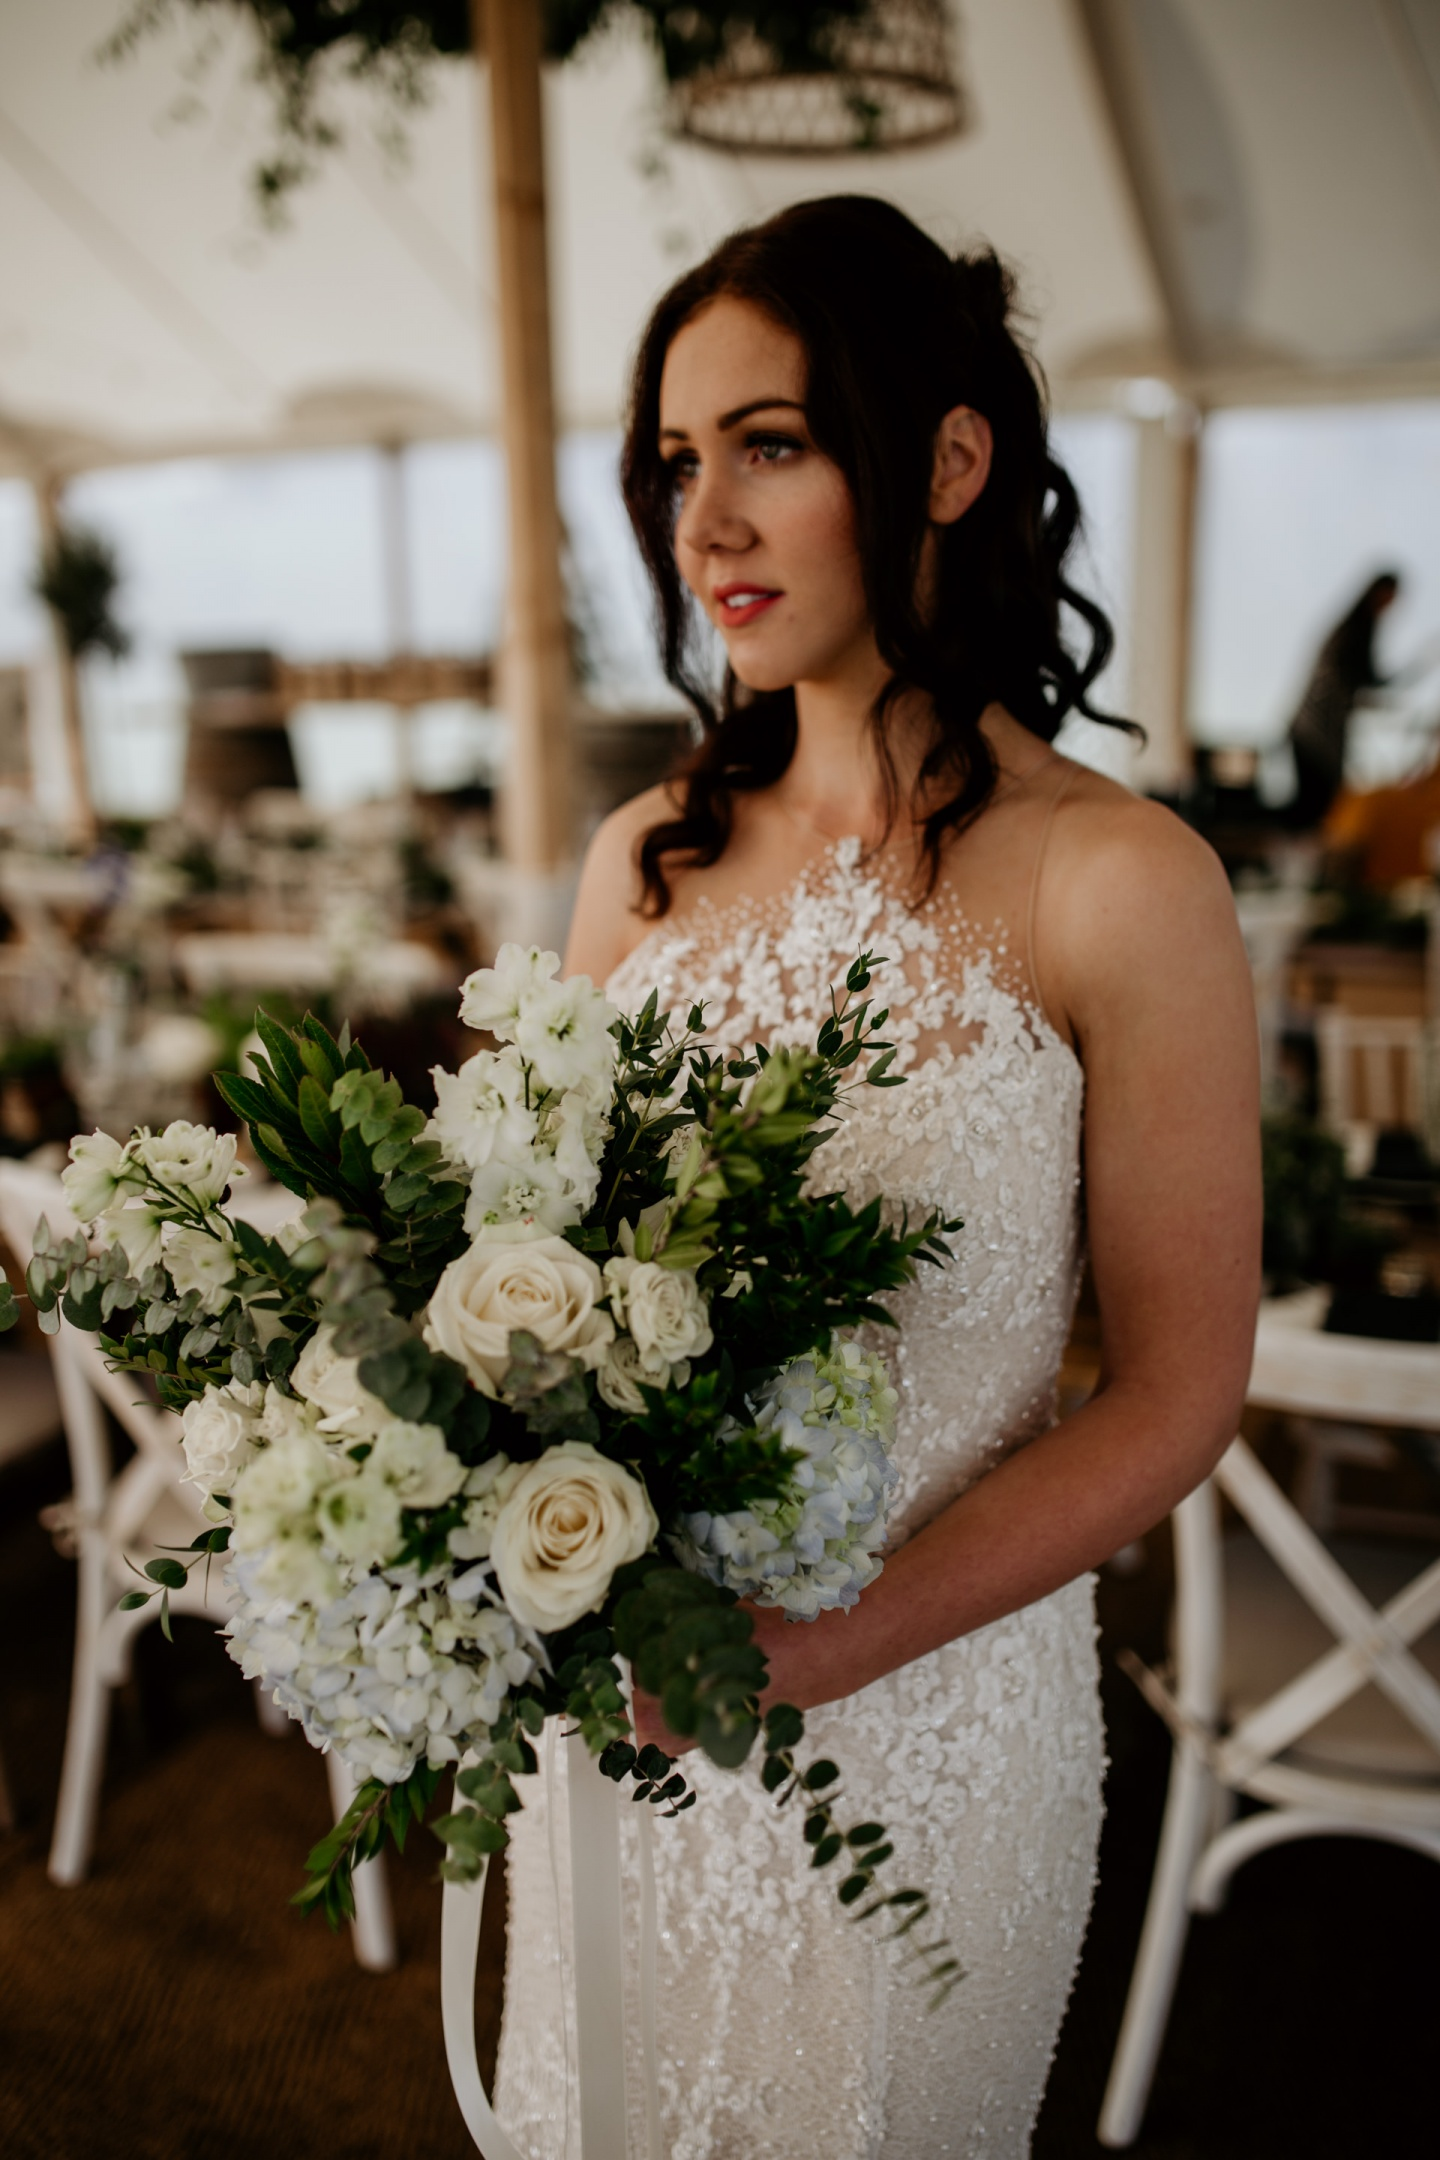 Bride standing in a marquee with white flowers